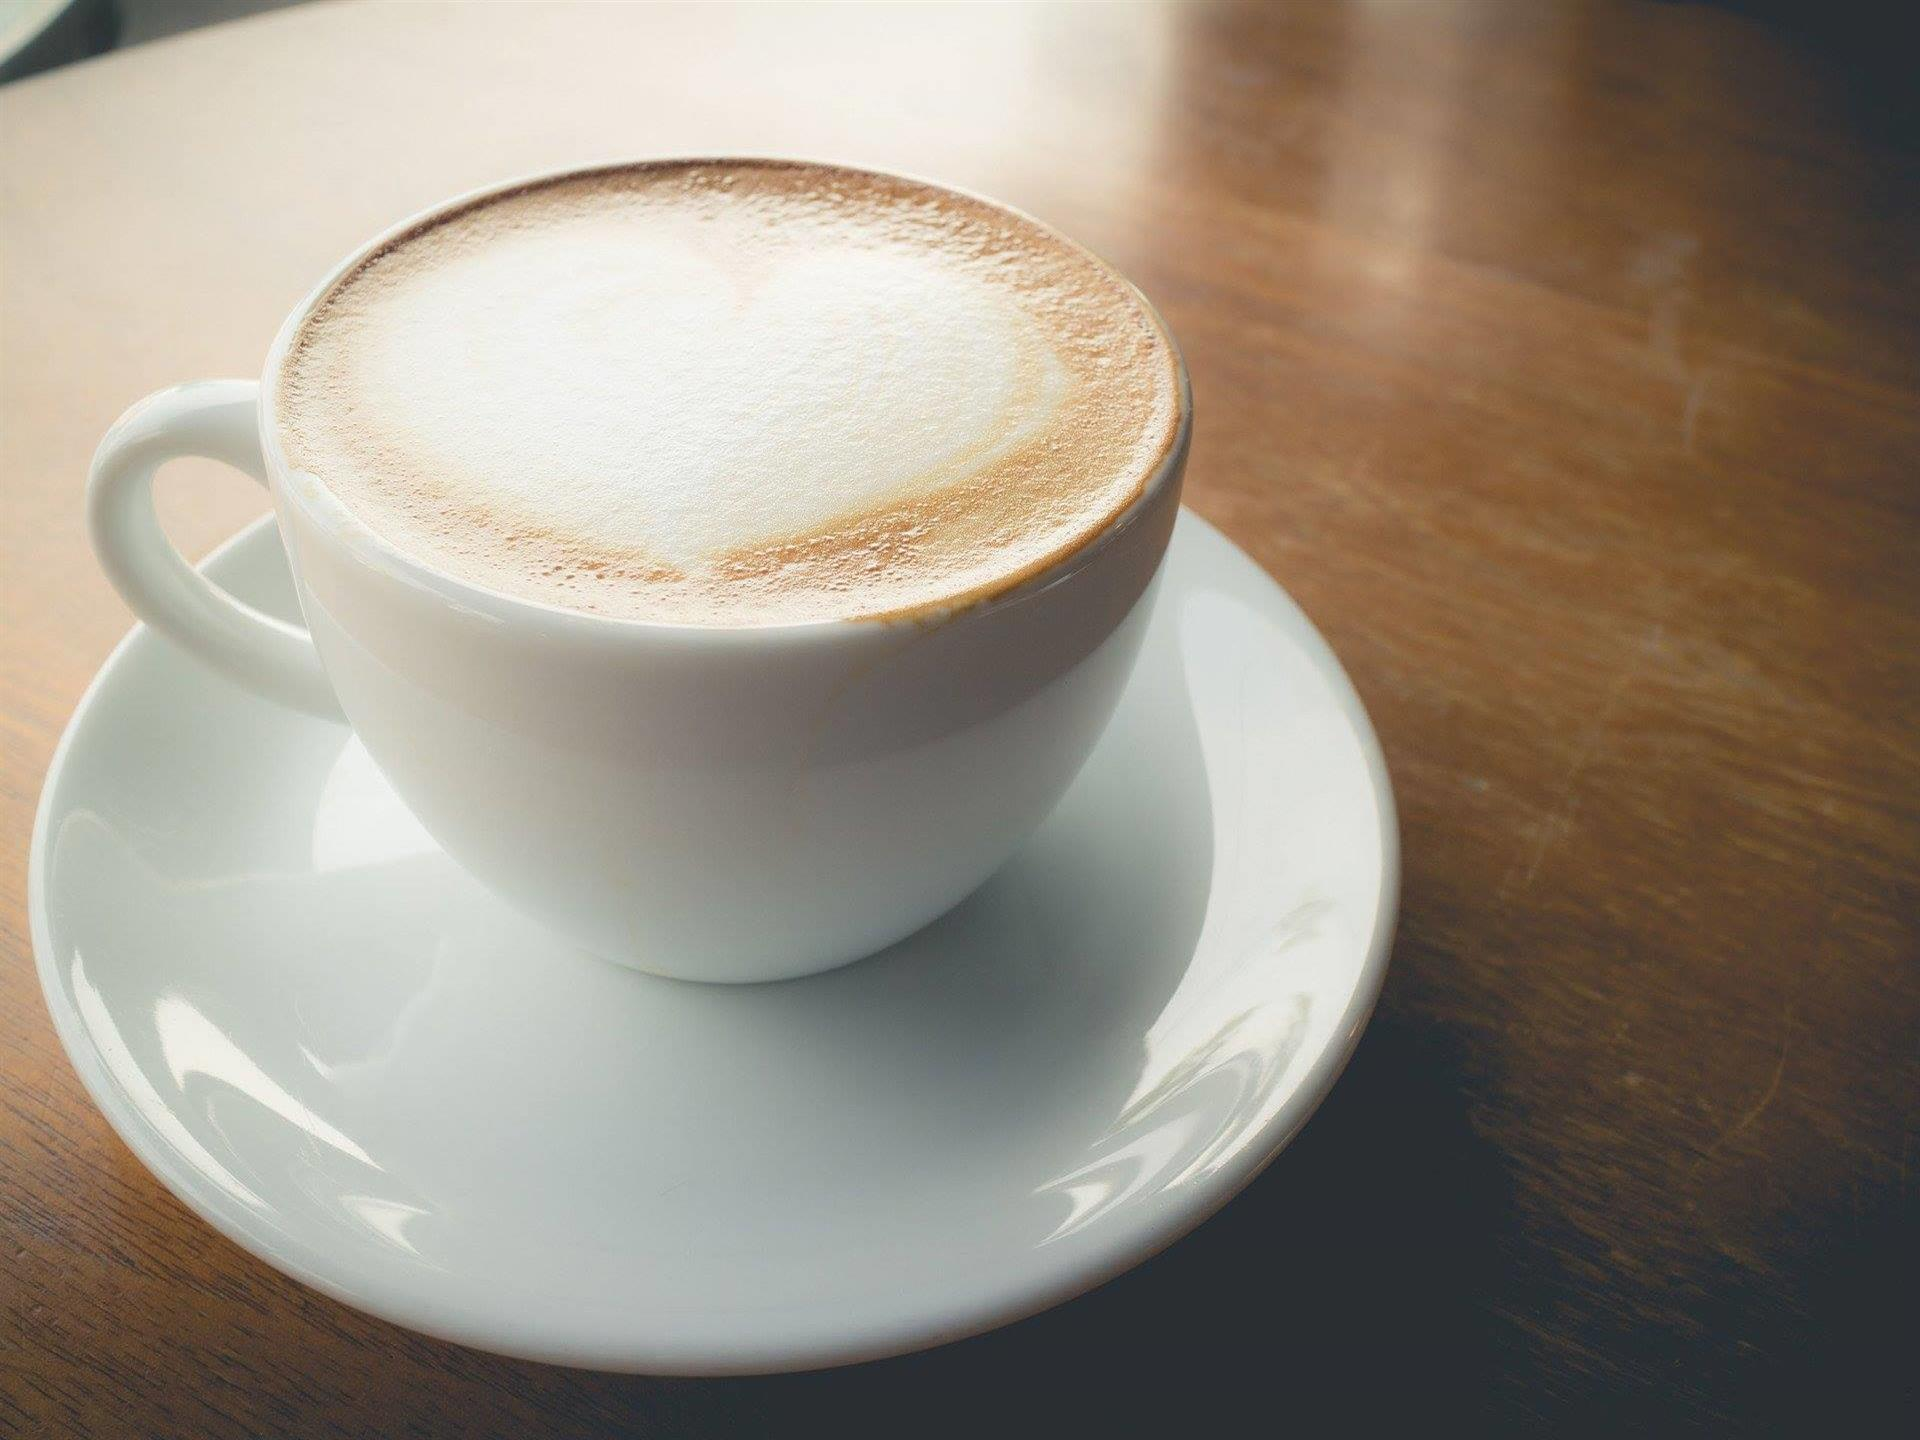 Cafe latte in a coffee cup on a wooden table-top